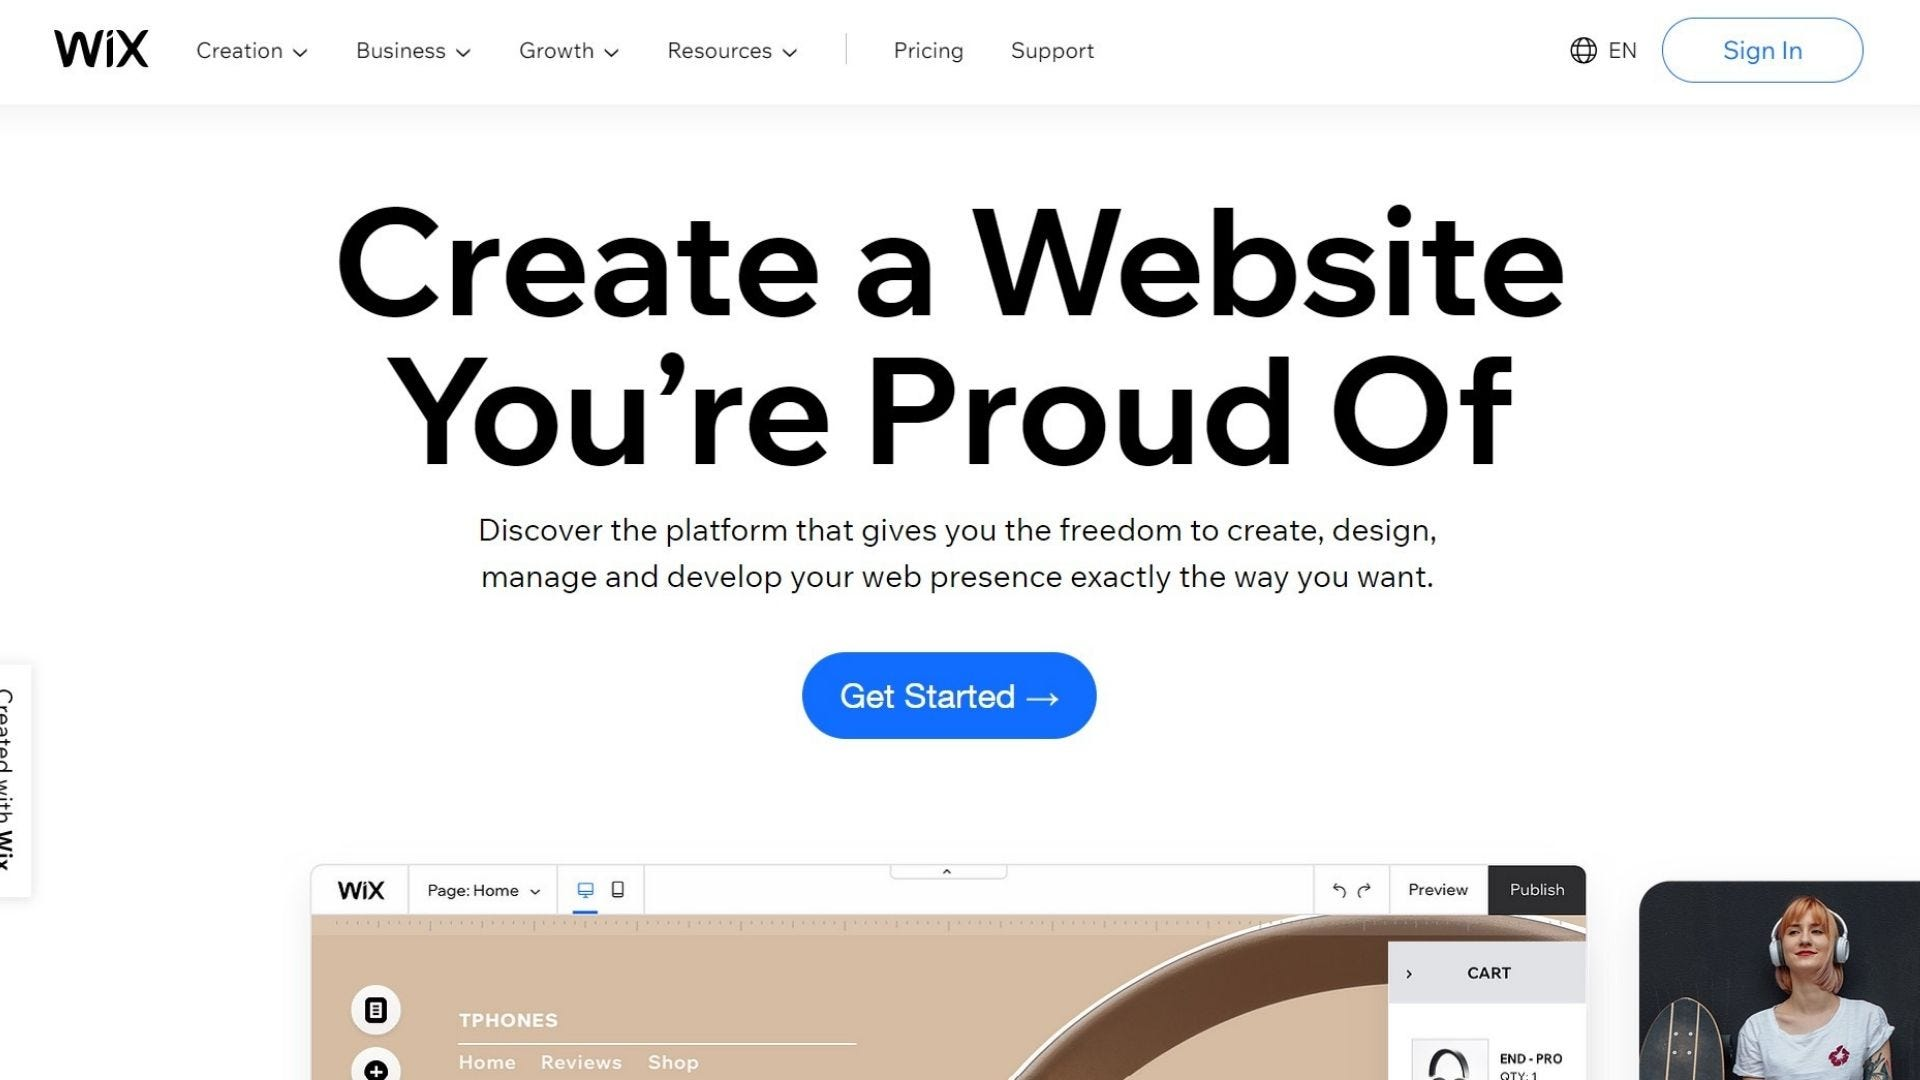 wix website builder home page